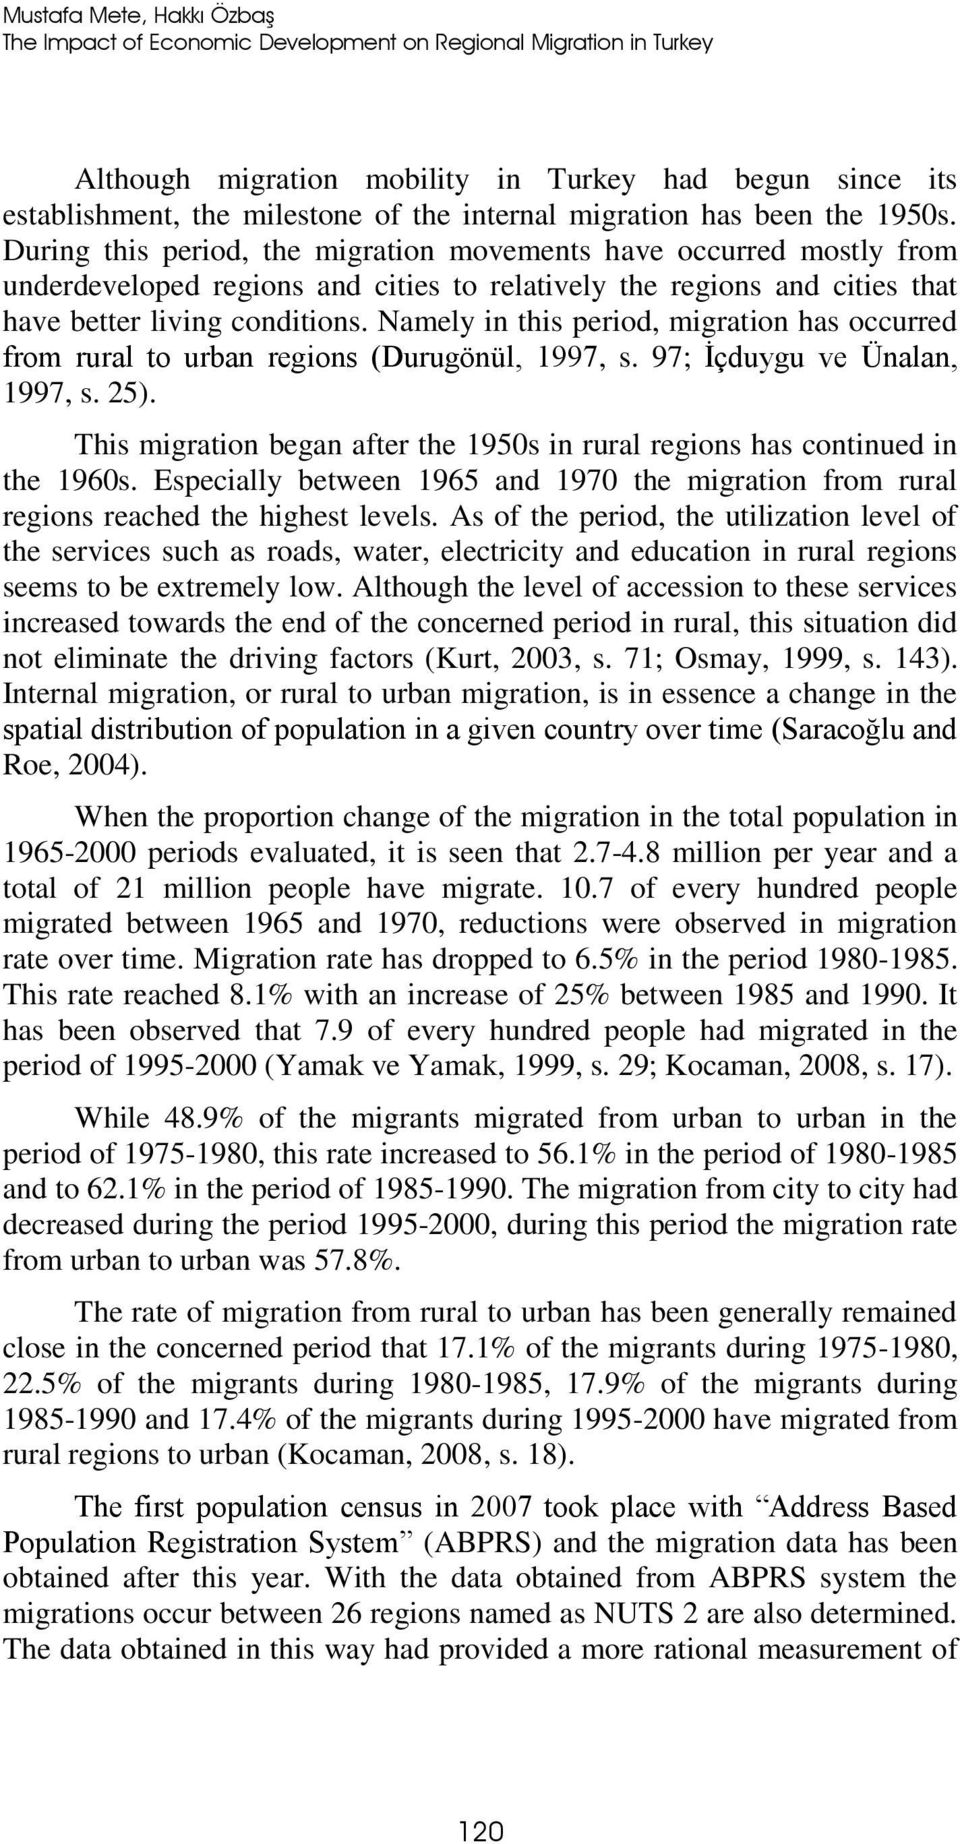 During this period, the migration movements have occurred mostly from underdeveloped regions and cities to relatively the regions and cities that have better living conditions.